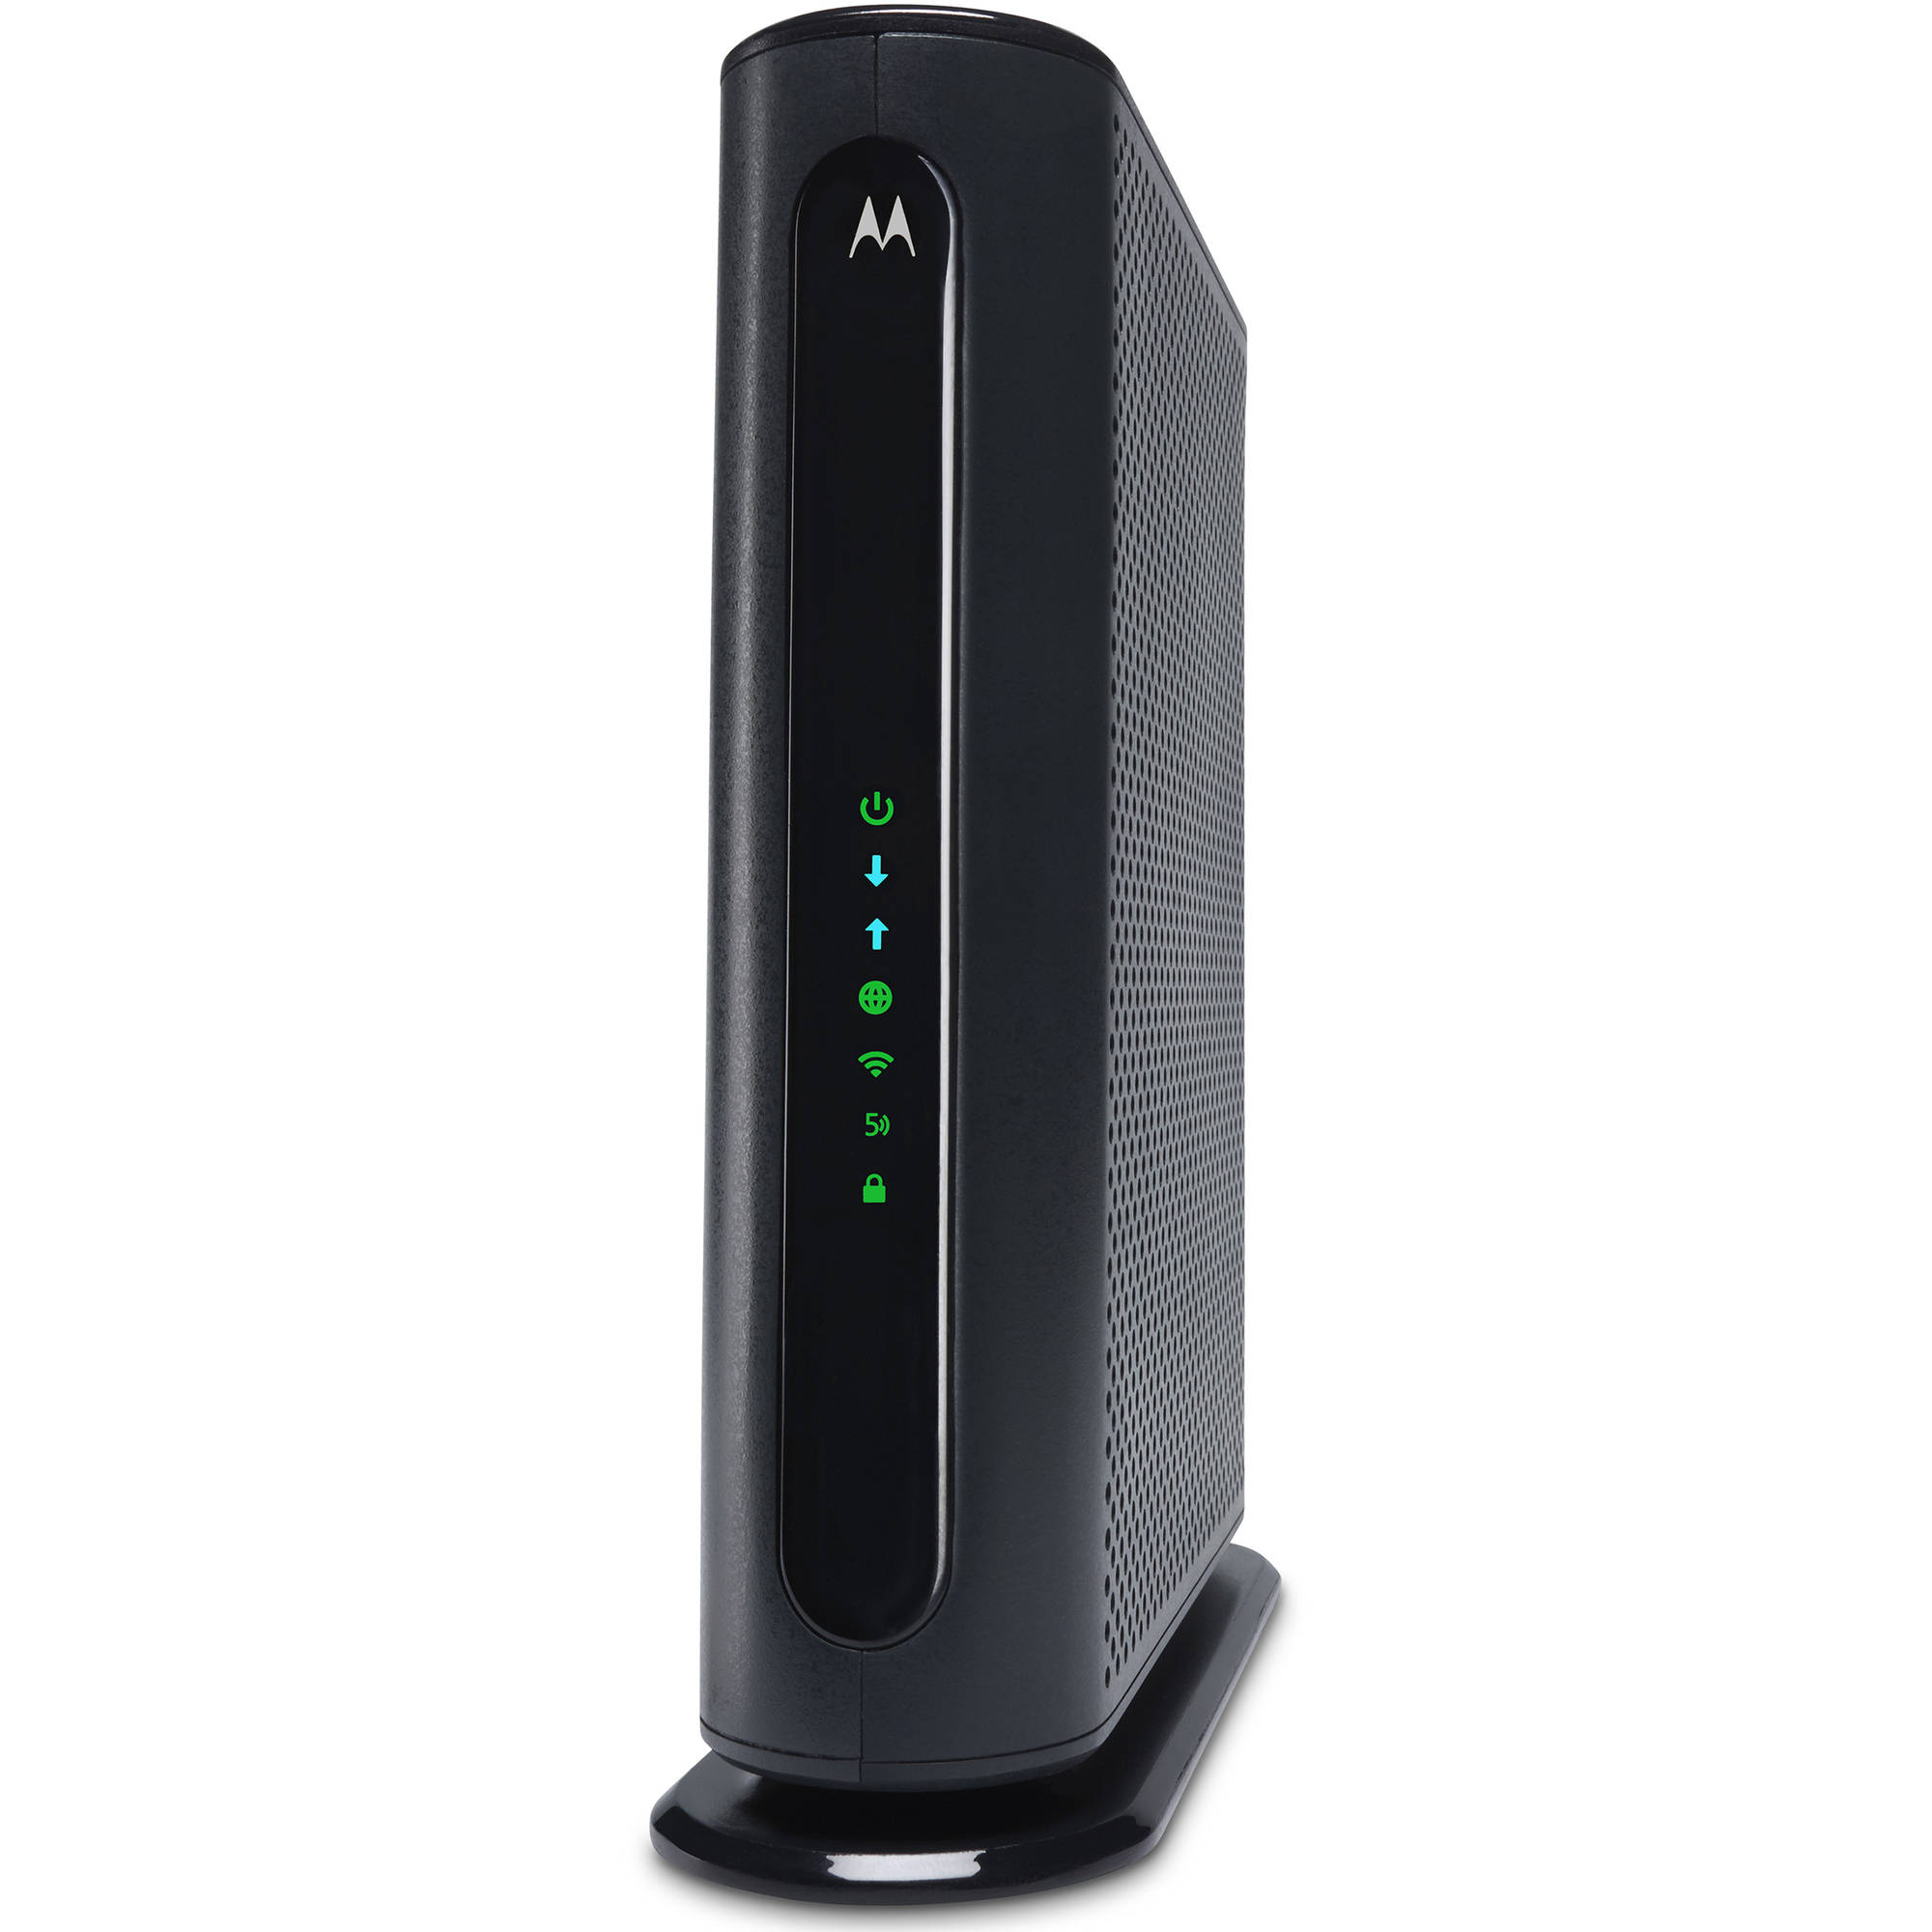 hight resolution of motorola mg7550 16x4 cable modem ac1900 wifi router combo docsis 3 0 certified for xfinity by comcast time warner spectrum cox more walmart